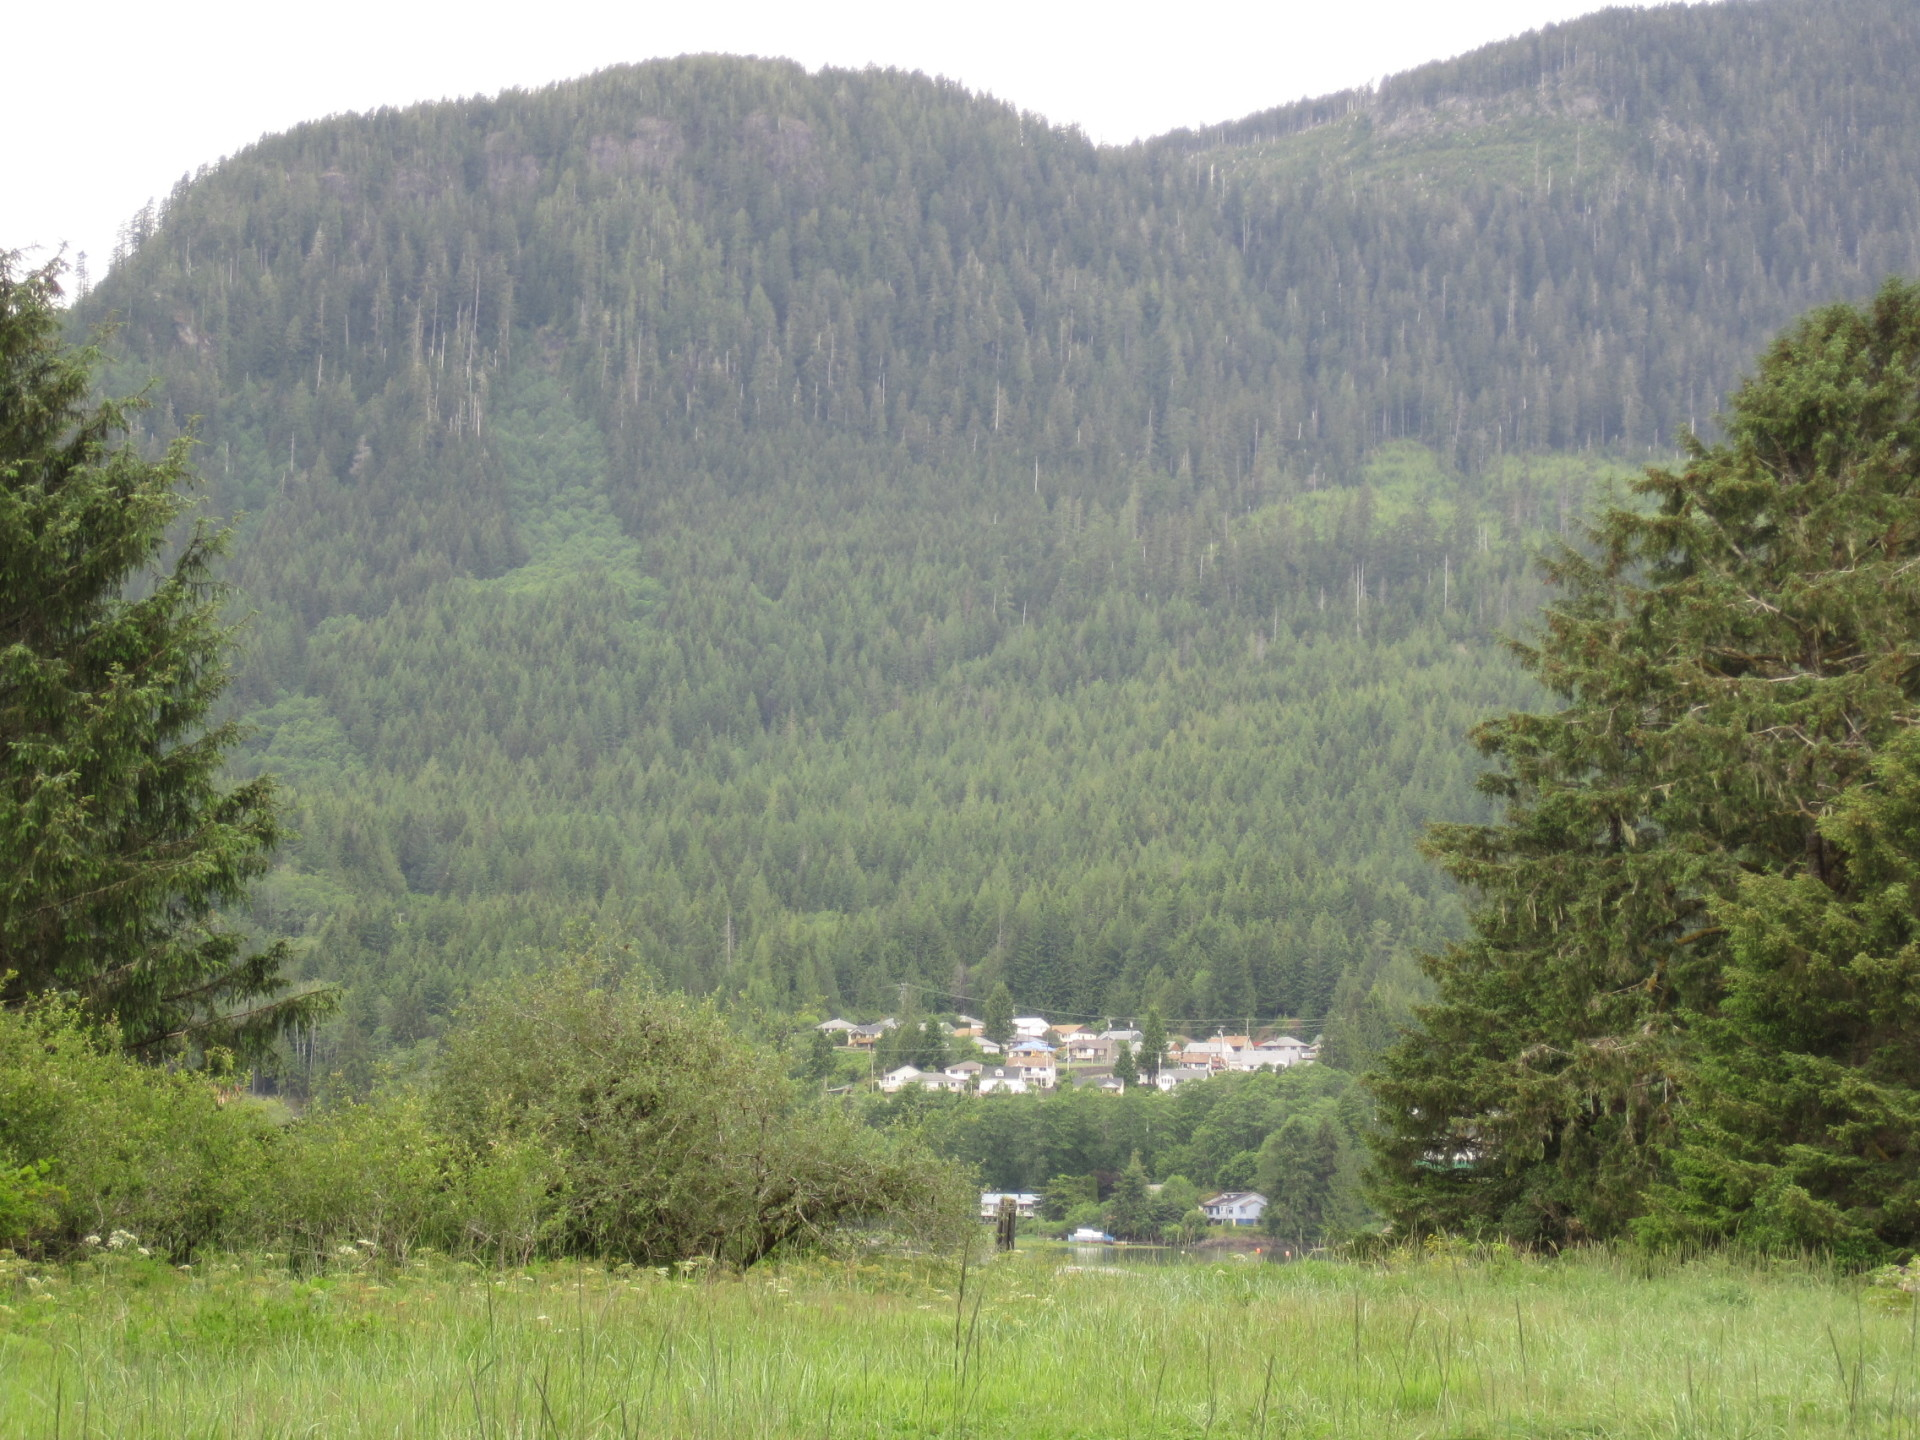 The village of Tahsis